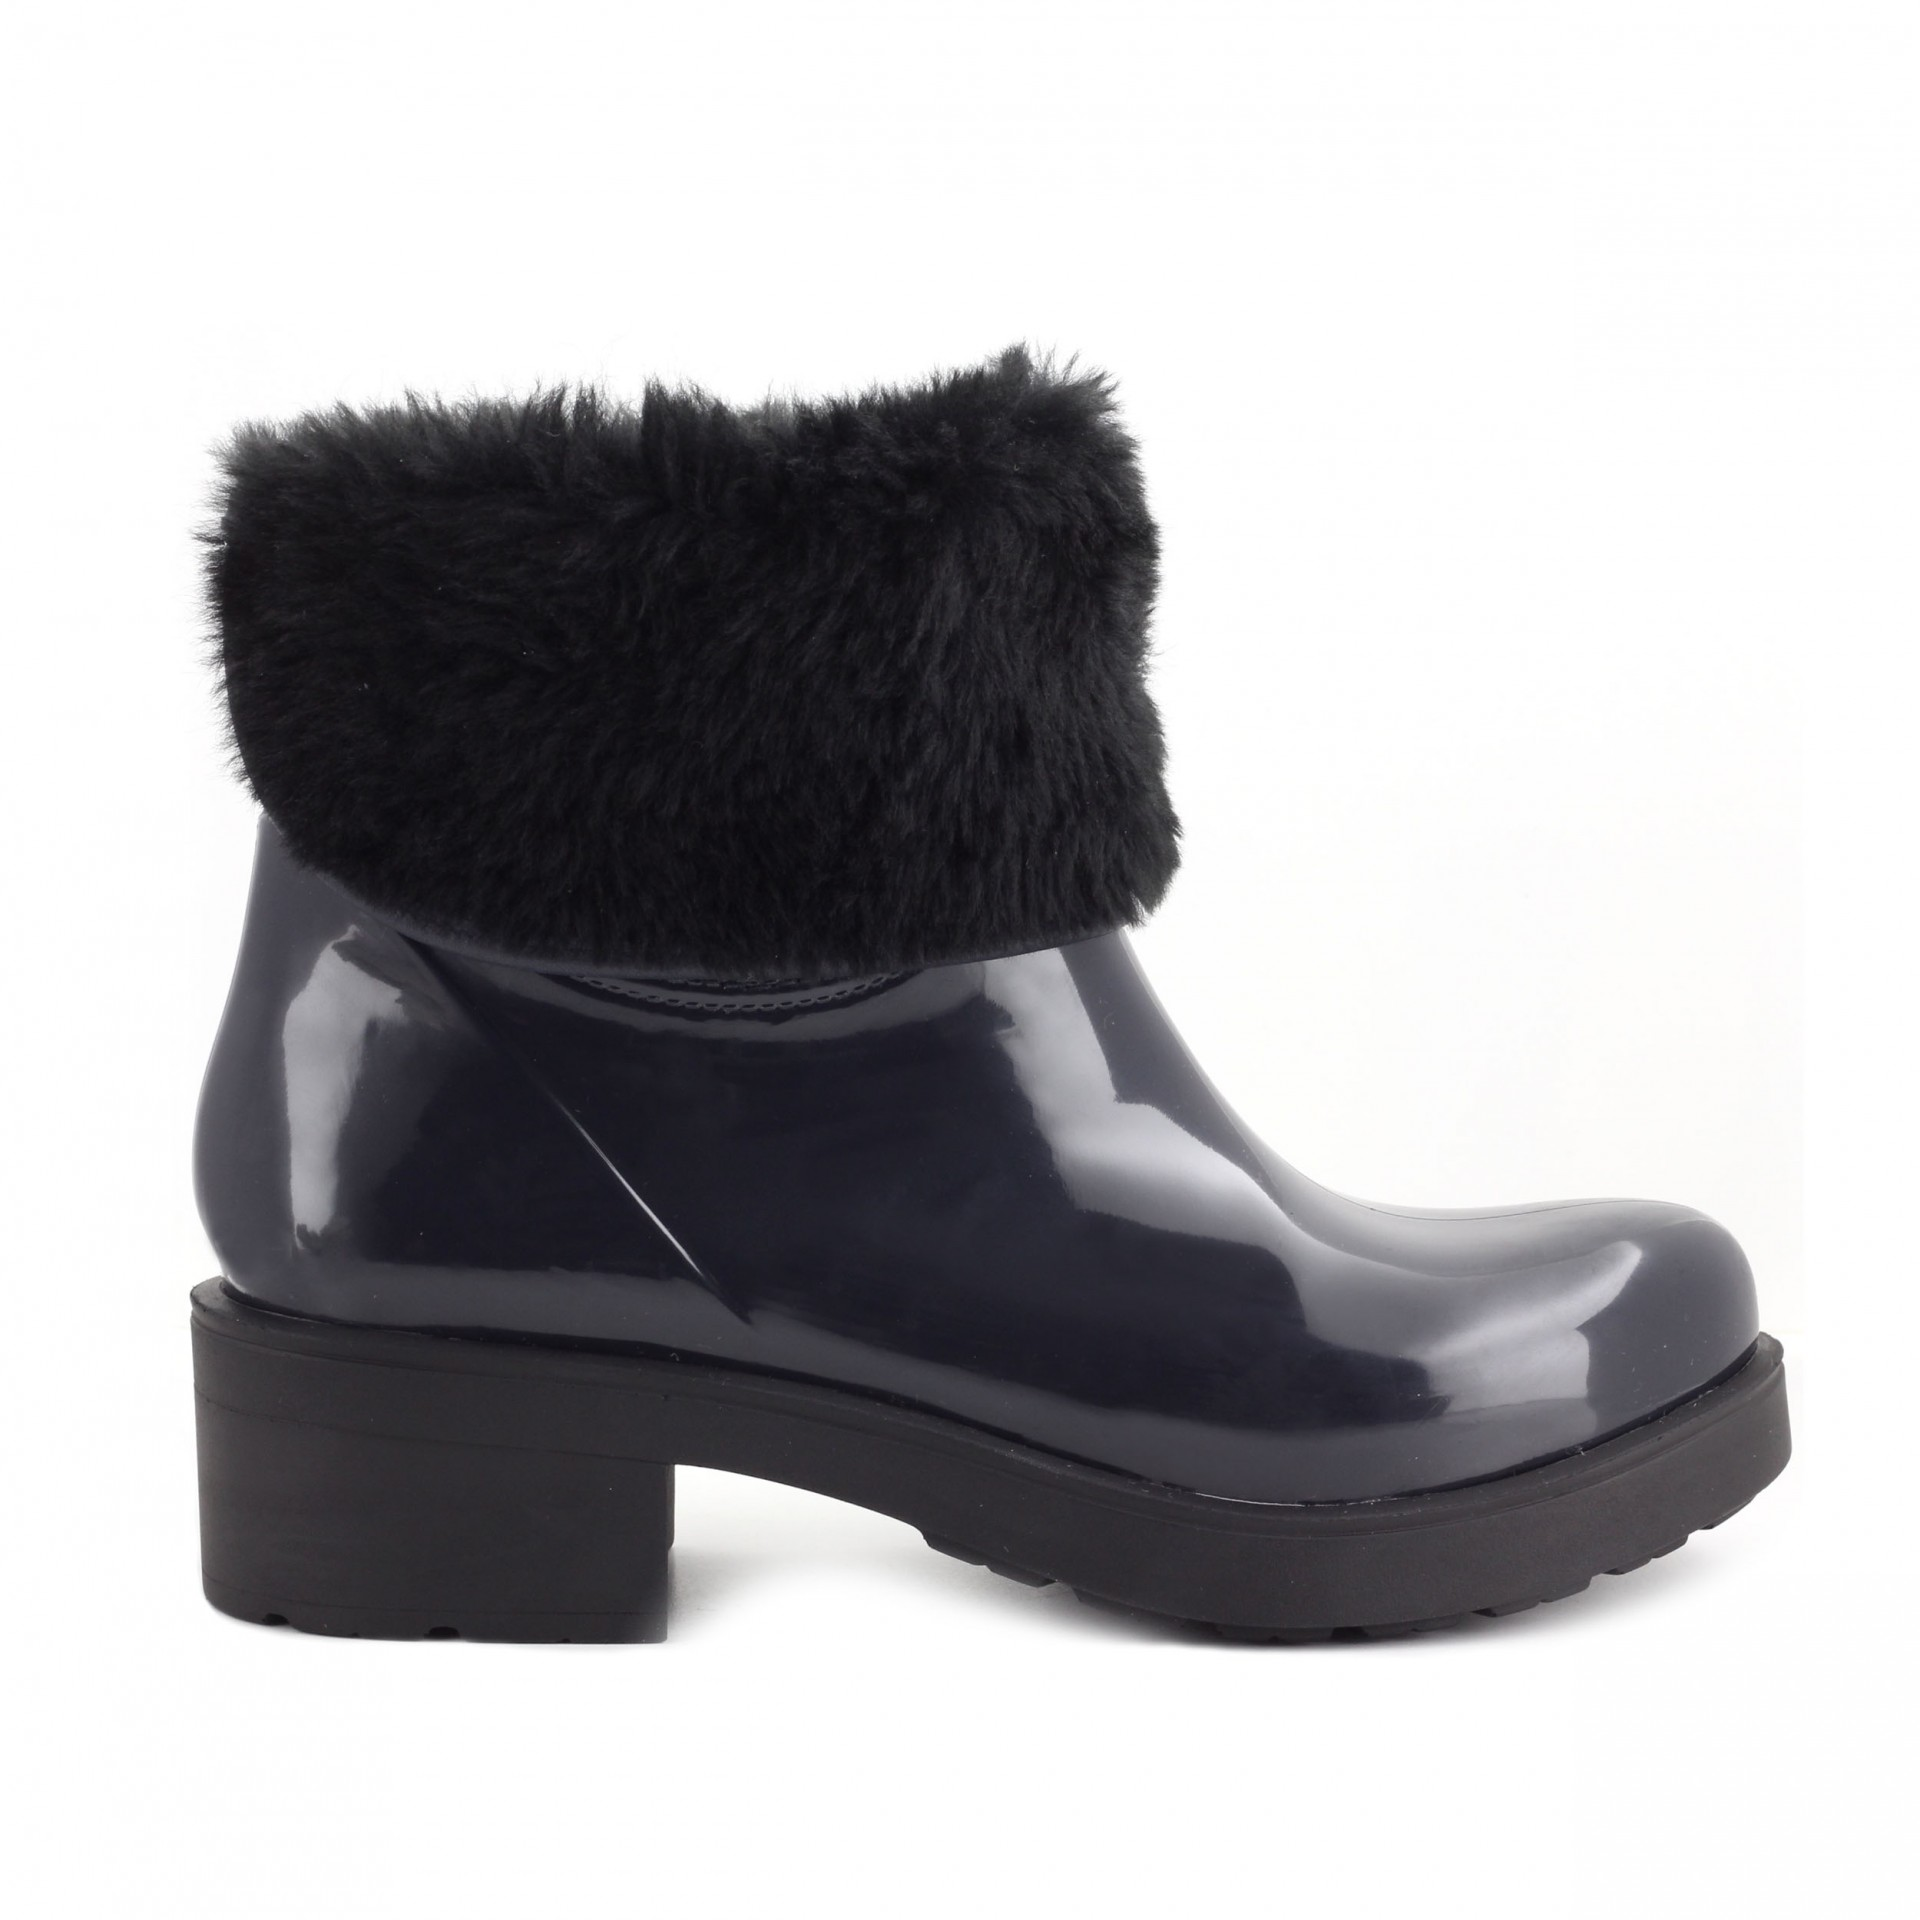 RAINYBOOT CUBANAS STORM220 MIDNIGHT BLUE+BLACK